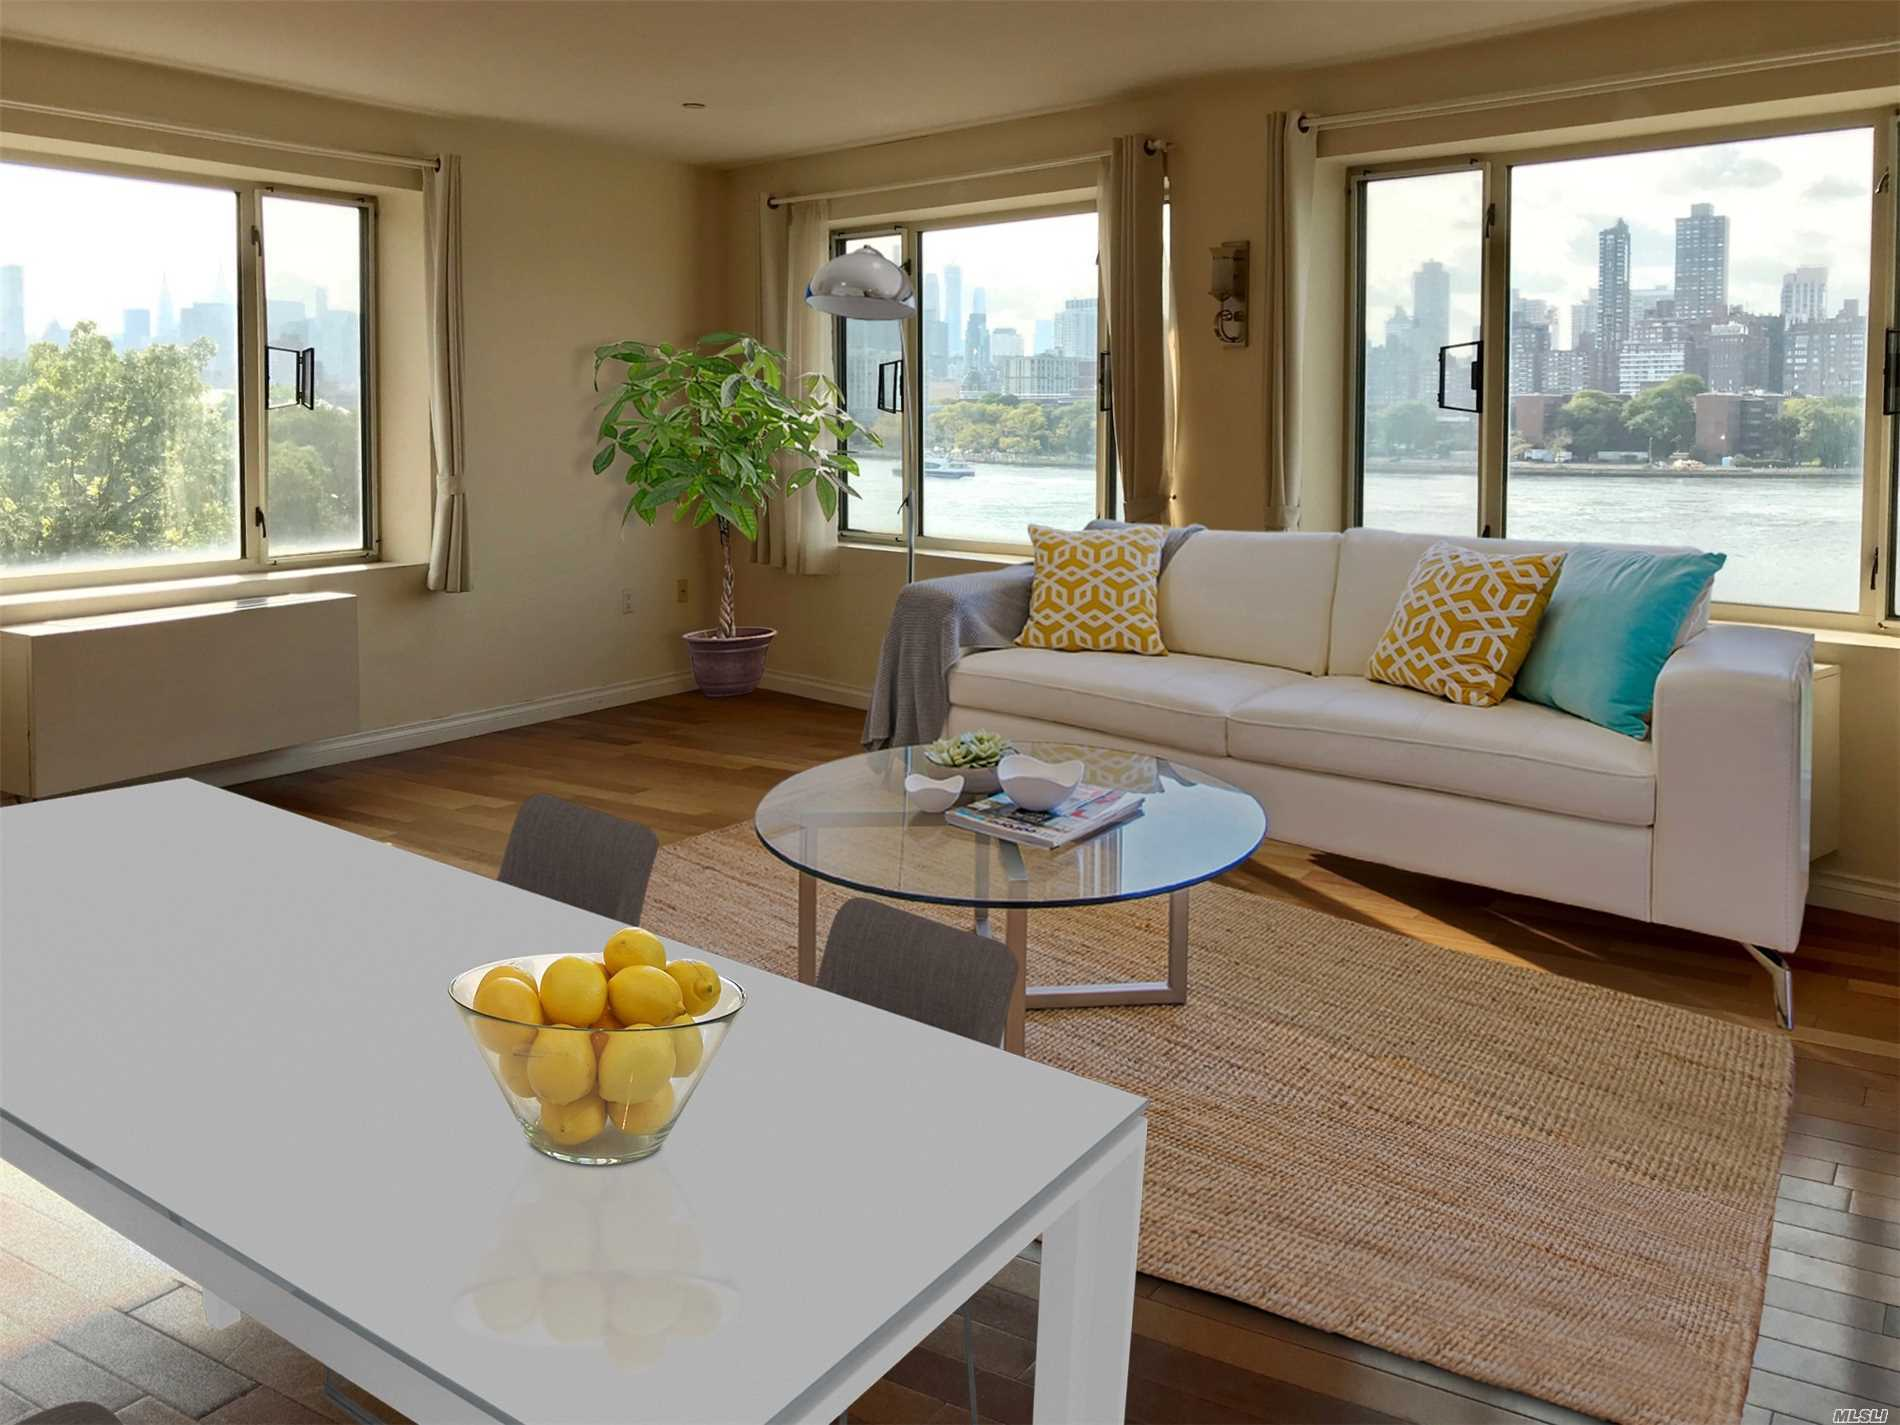 2 Spacious Bedrooms, 1 Full Bath, 1 Half Bath, Large, Corner Unit, Waterfront, Open Kitchen Living Rm With Manhattan Skyline Views, Washer/Dryer In Unit. Tax Abatement Until 2031 - Fitness Room- Pet Friendly - Roof Deck - 24 Hr. Doorman - Elevator Building- Attached Garage Parking - Bike Storage Room - Additional Storage Room In Basement - Steps From Astoria/Nyc Ferry Dock - Buses Direct To Manhattan At Corner Or Short Ride Direct To N/W Or F Train.